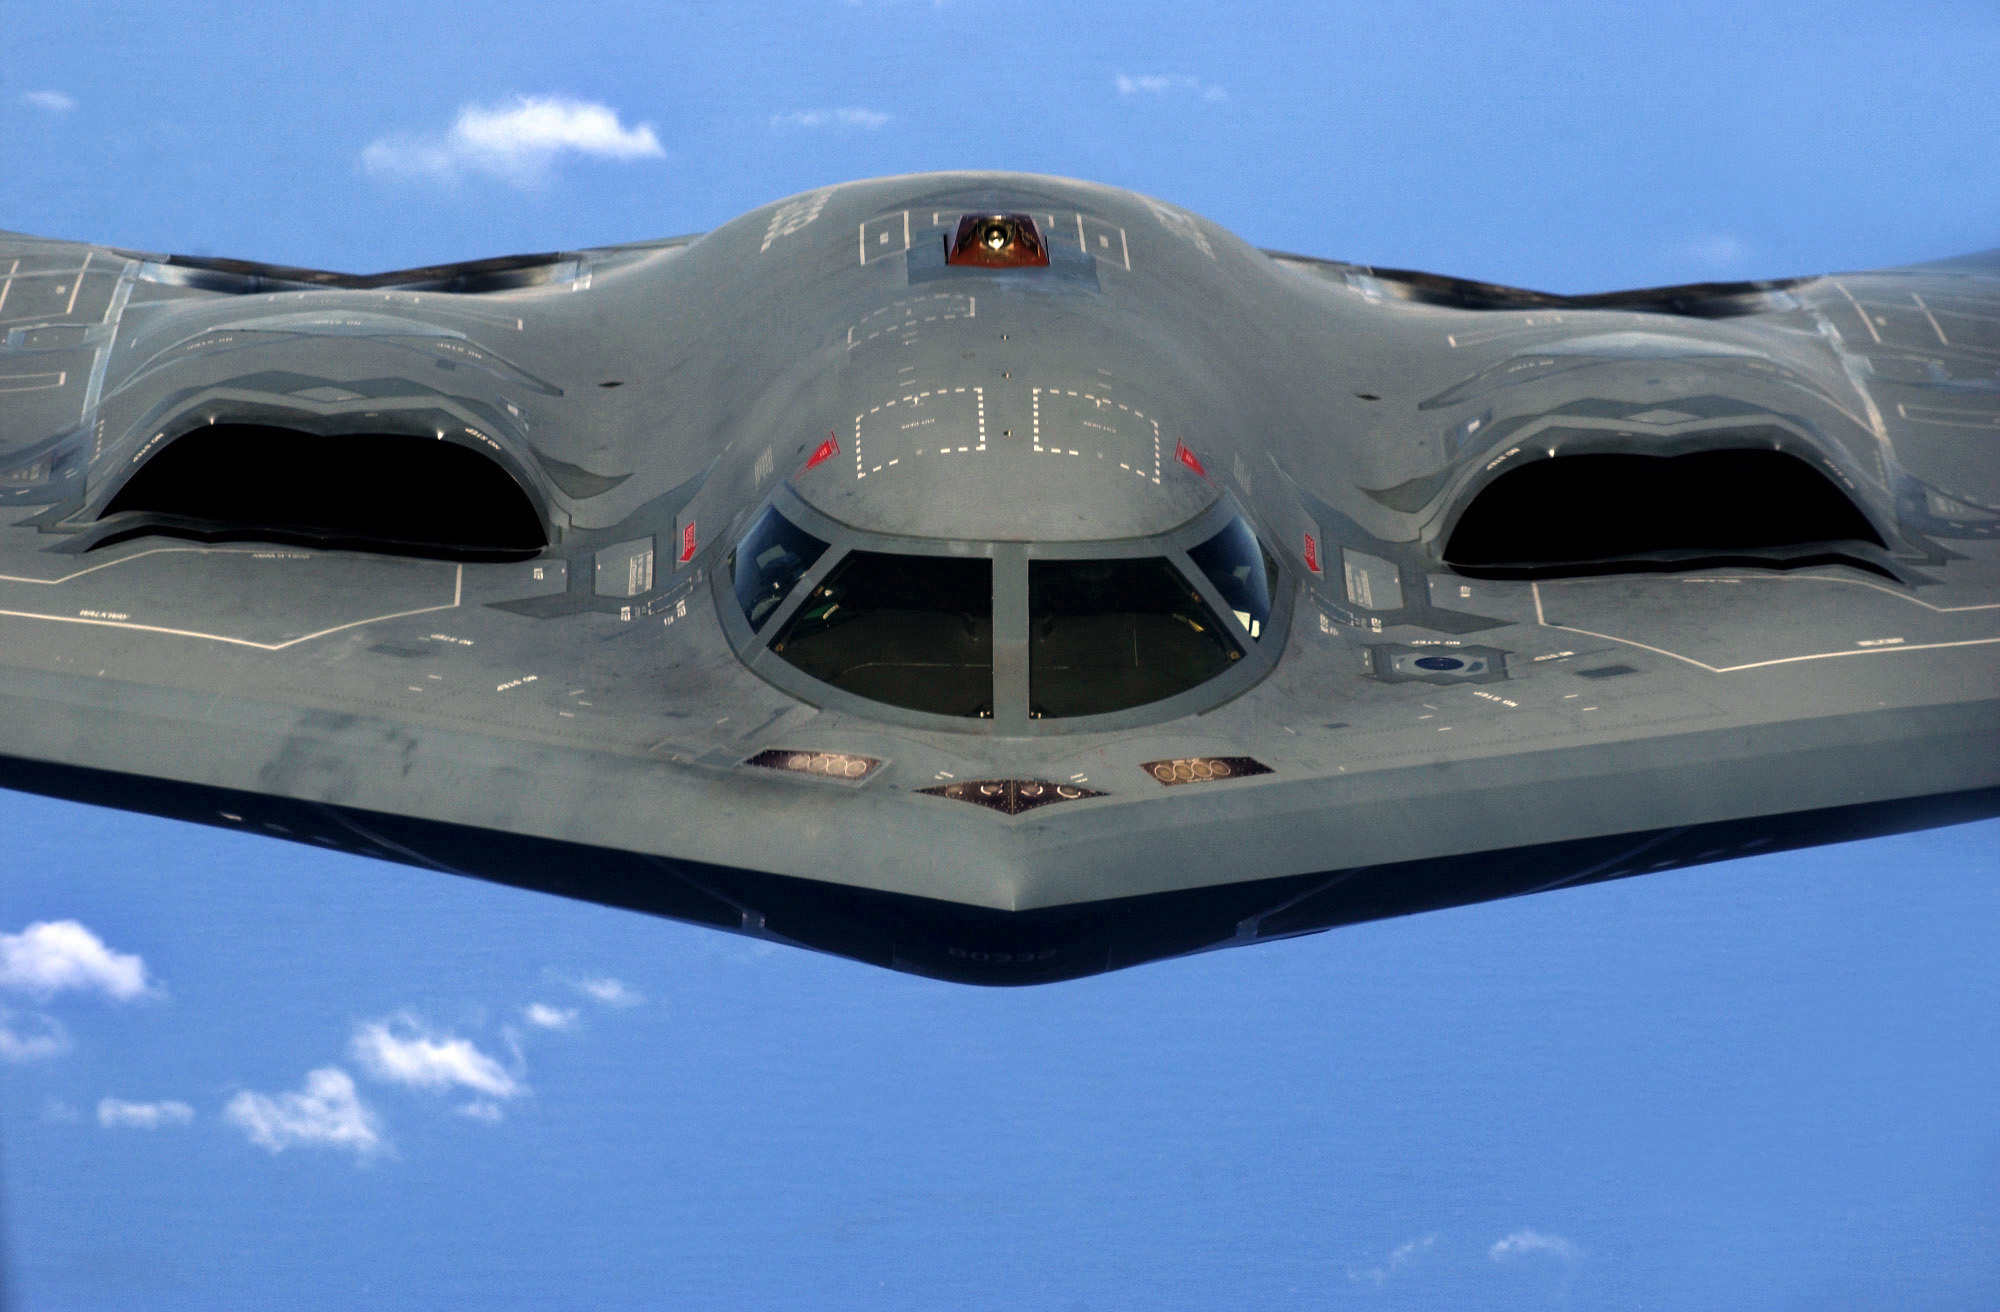 Mic Drop, B-2 Bomber Style: Watch This Stealth Bomber Wipe Out A Mock Airfield